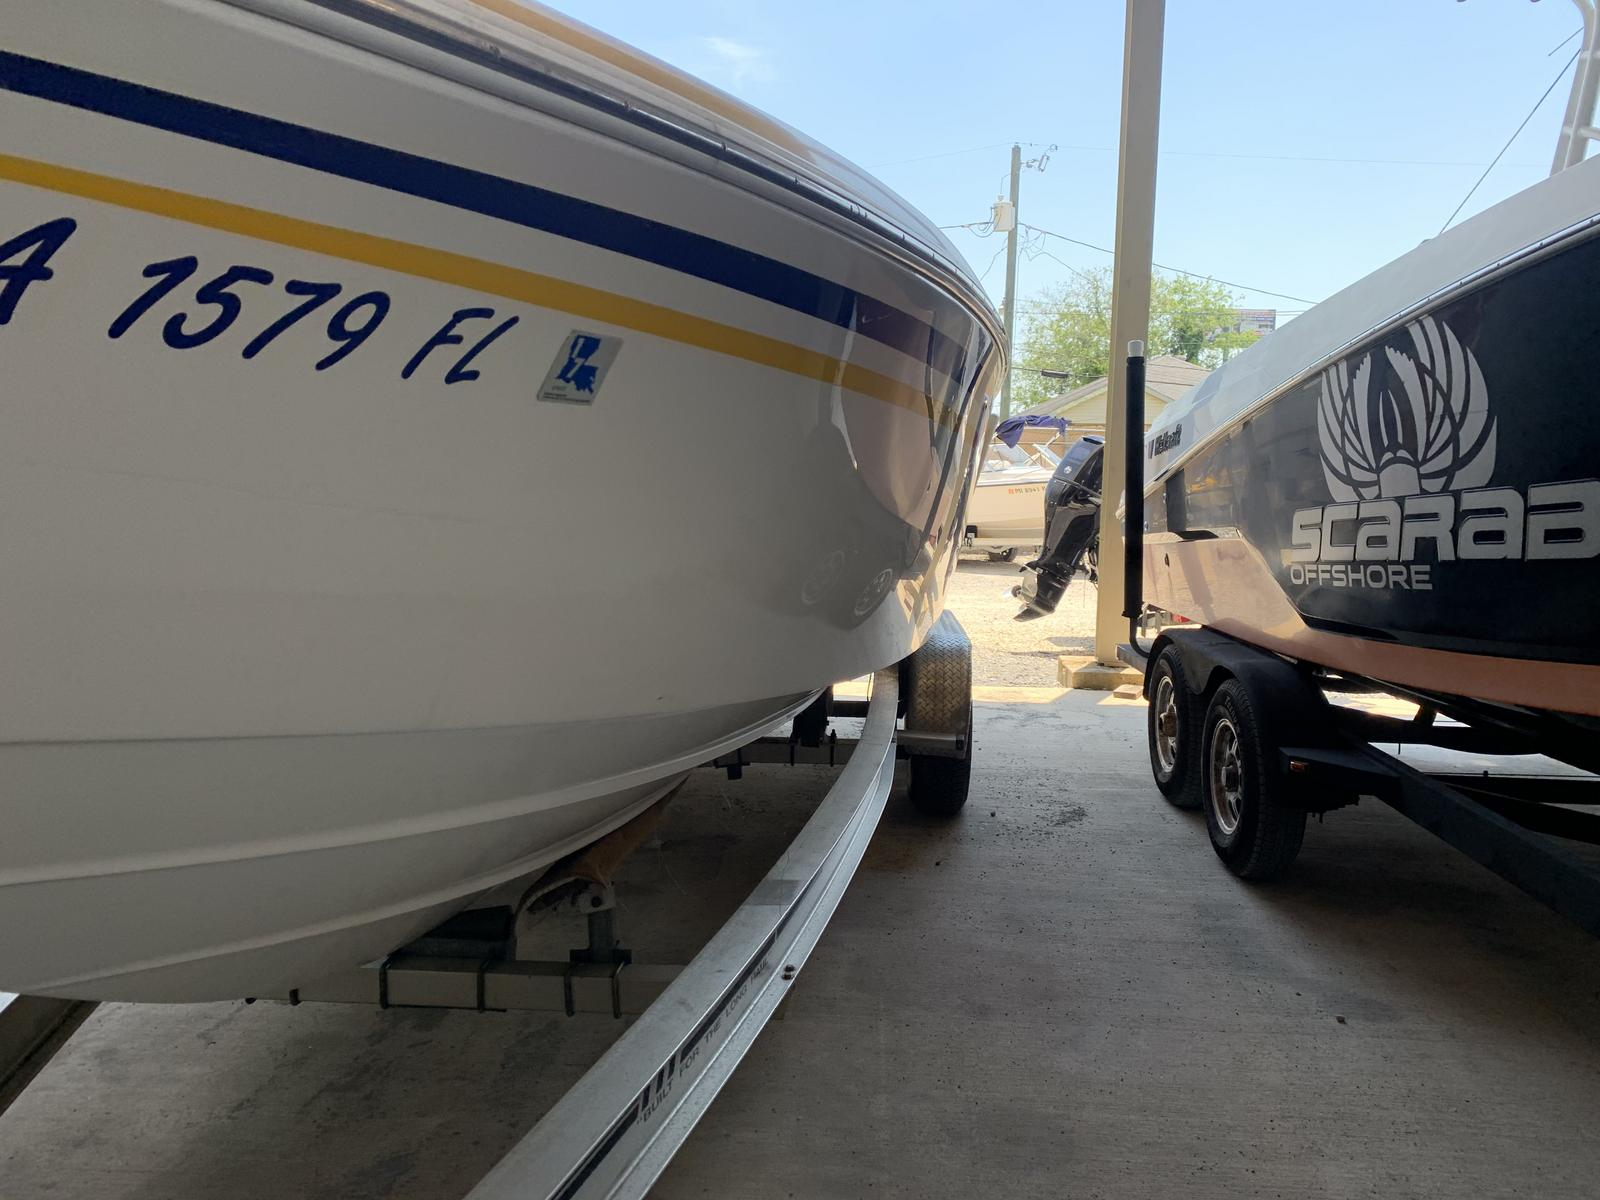 2005 Powerquest boat for sale, model of the boat is Legend 260 SX & Image # 6 of 9